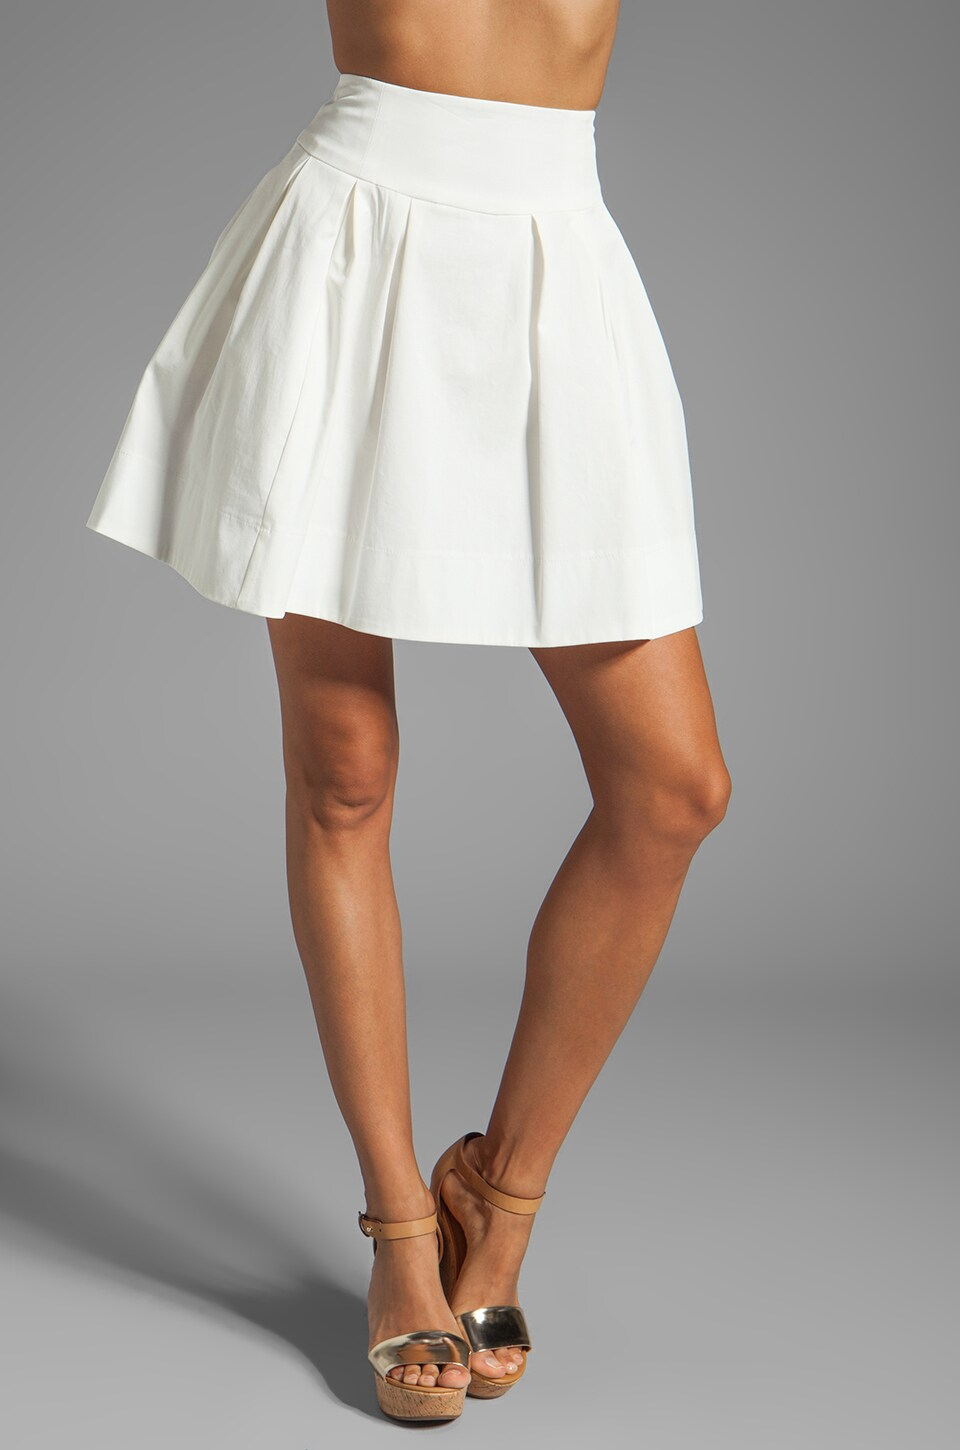 Nanette Lepore Beach Time Skirt in White